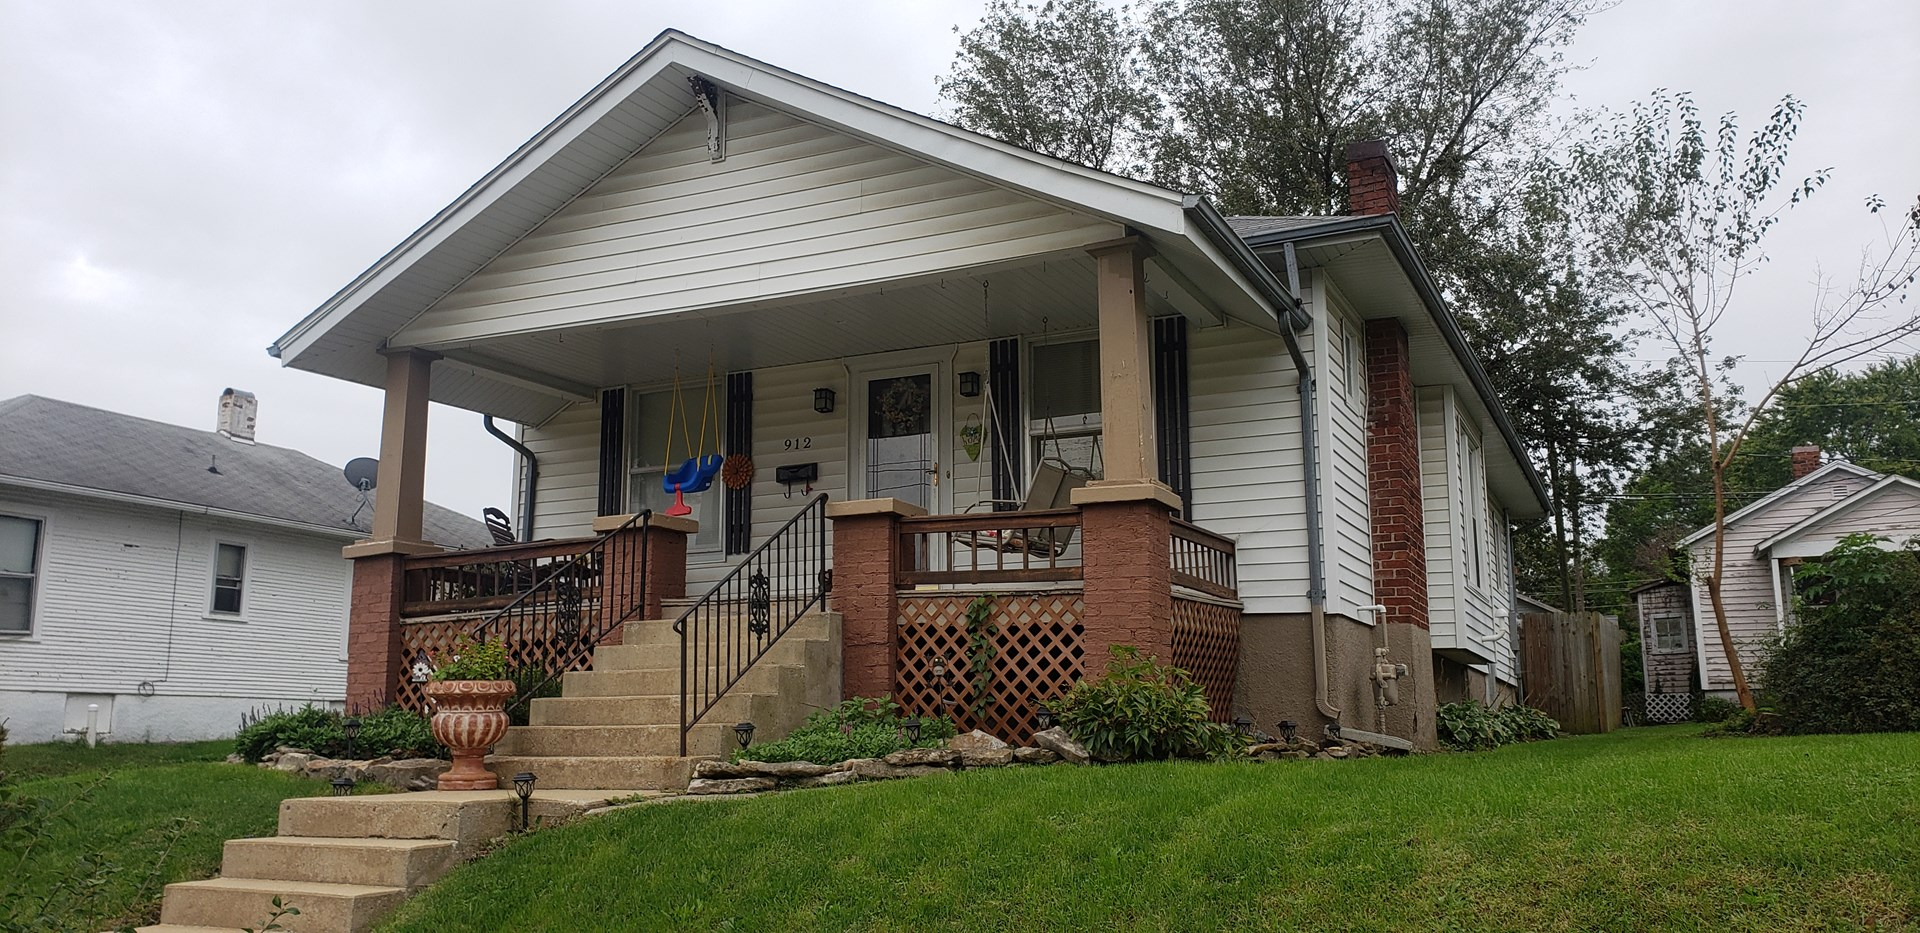 Affordable Well-Kept Home For Sale Chillicothe, Missouri